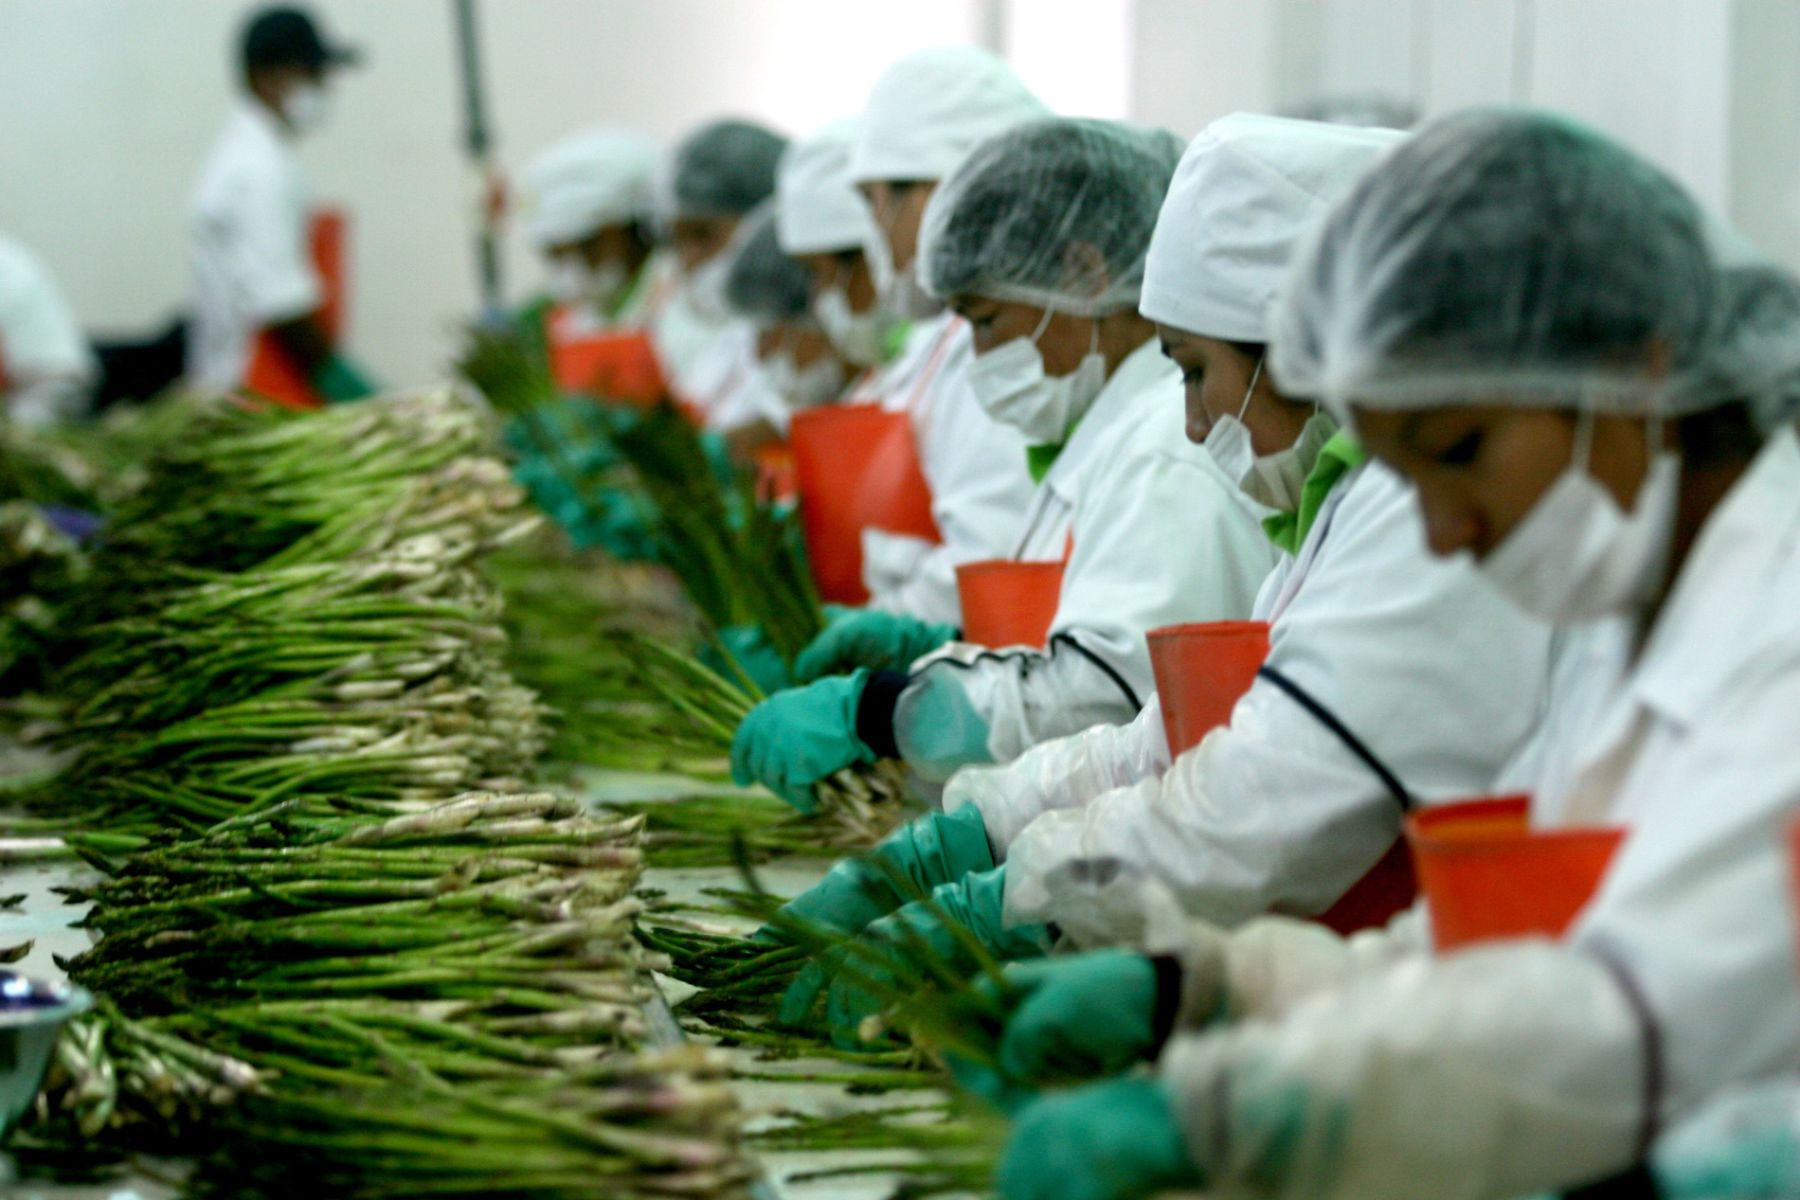 Peru expanded its fresh green asparagus exports to the US market last year